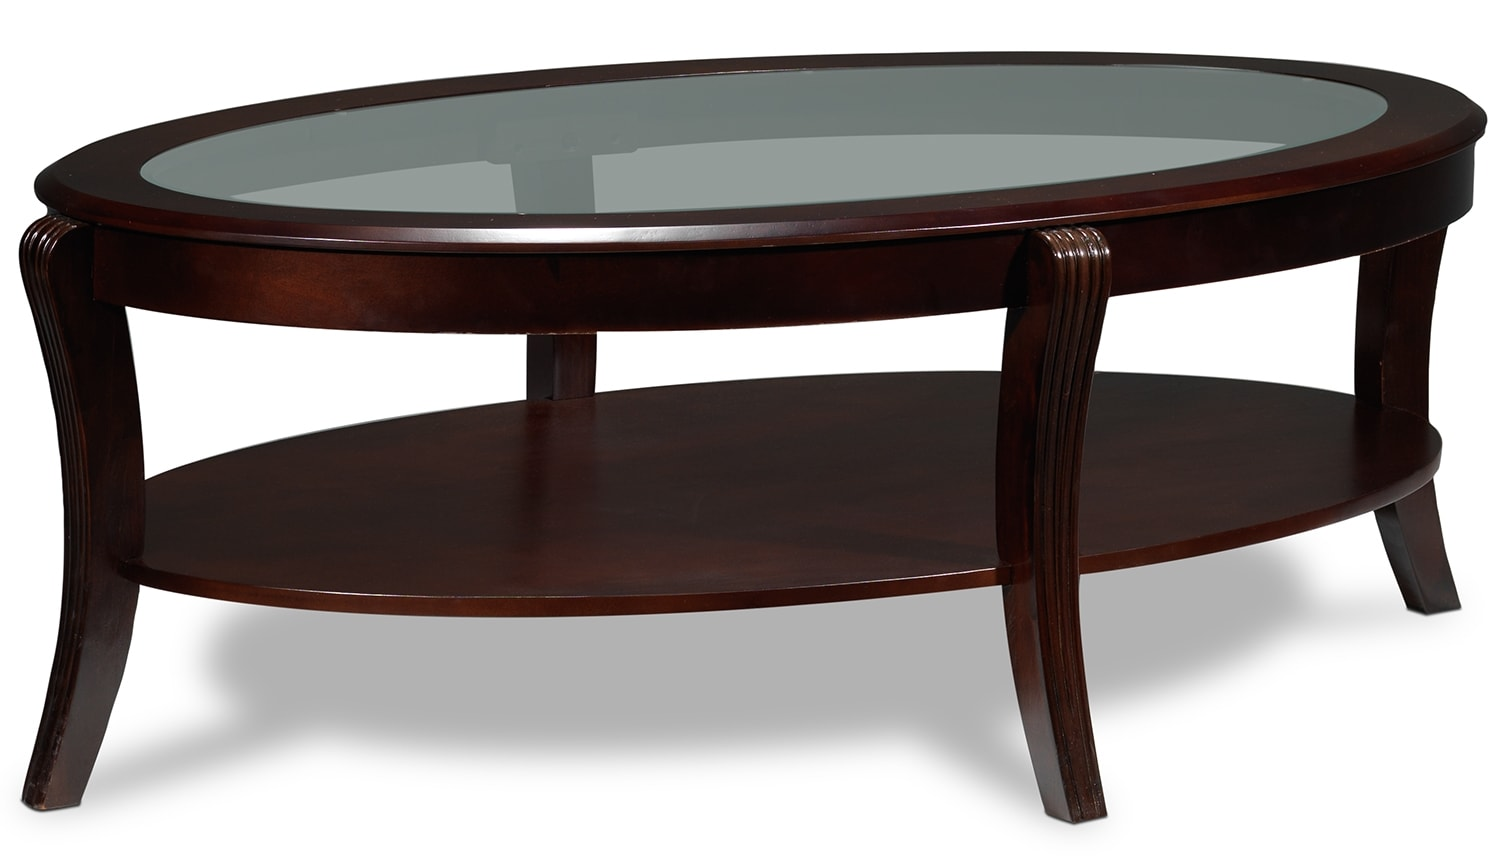 theo coffee table  mahogany  leon's - hover to zoom